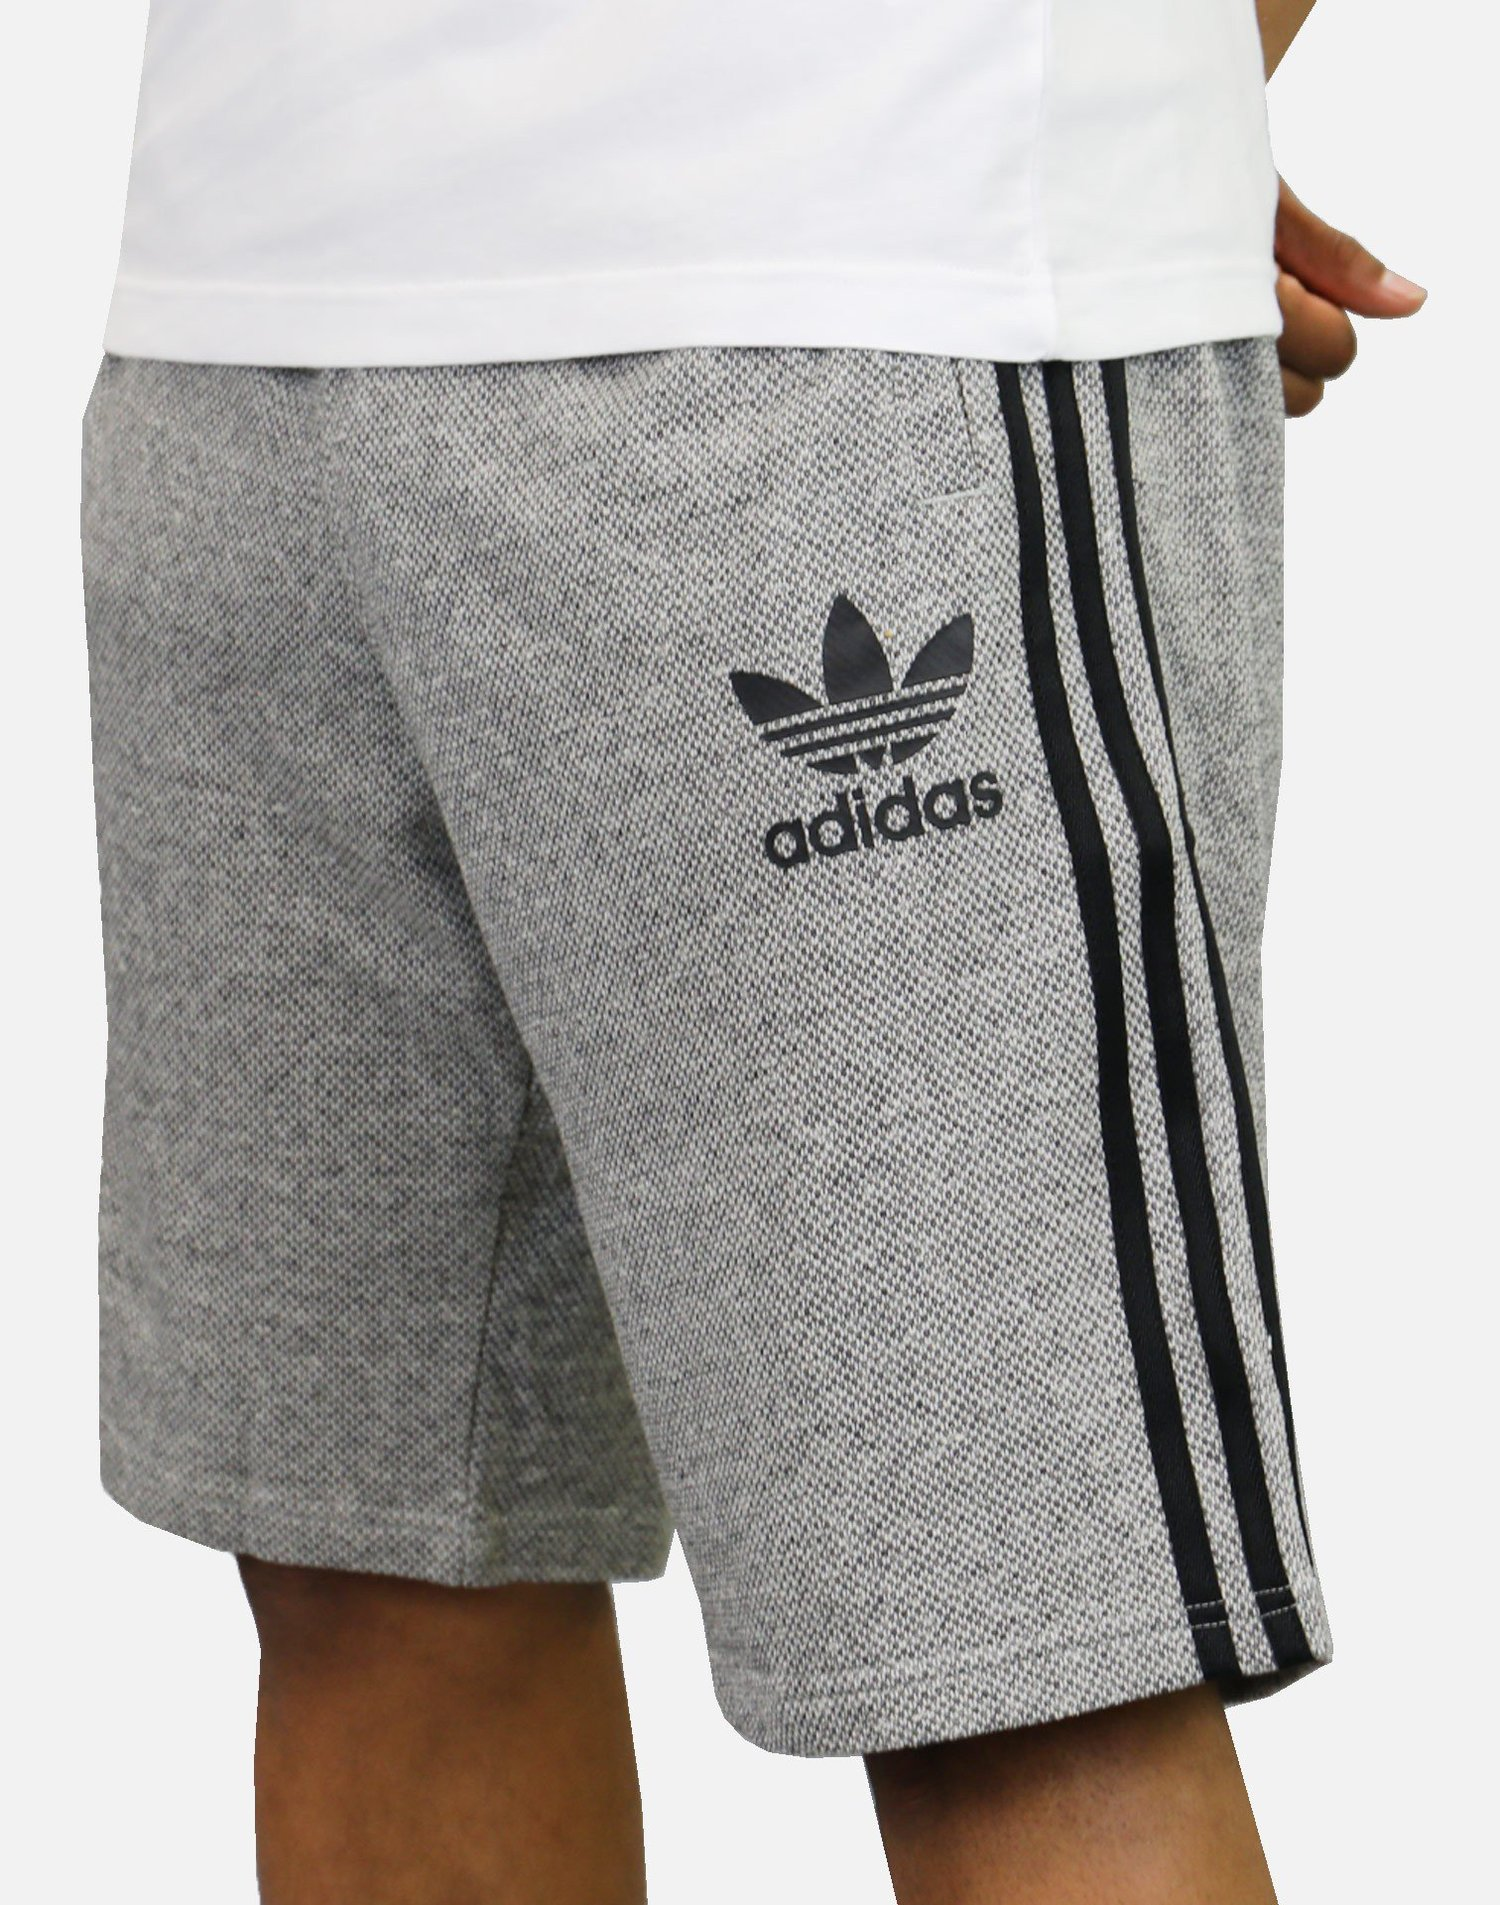 hot sale online c92dc d37e6 44% OFF the adidas Superstar Shorts